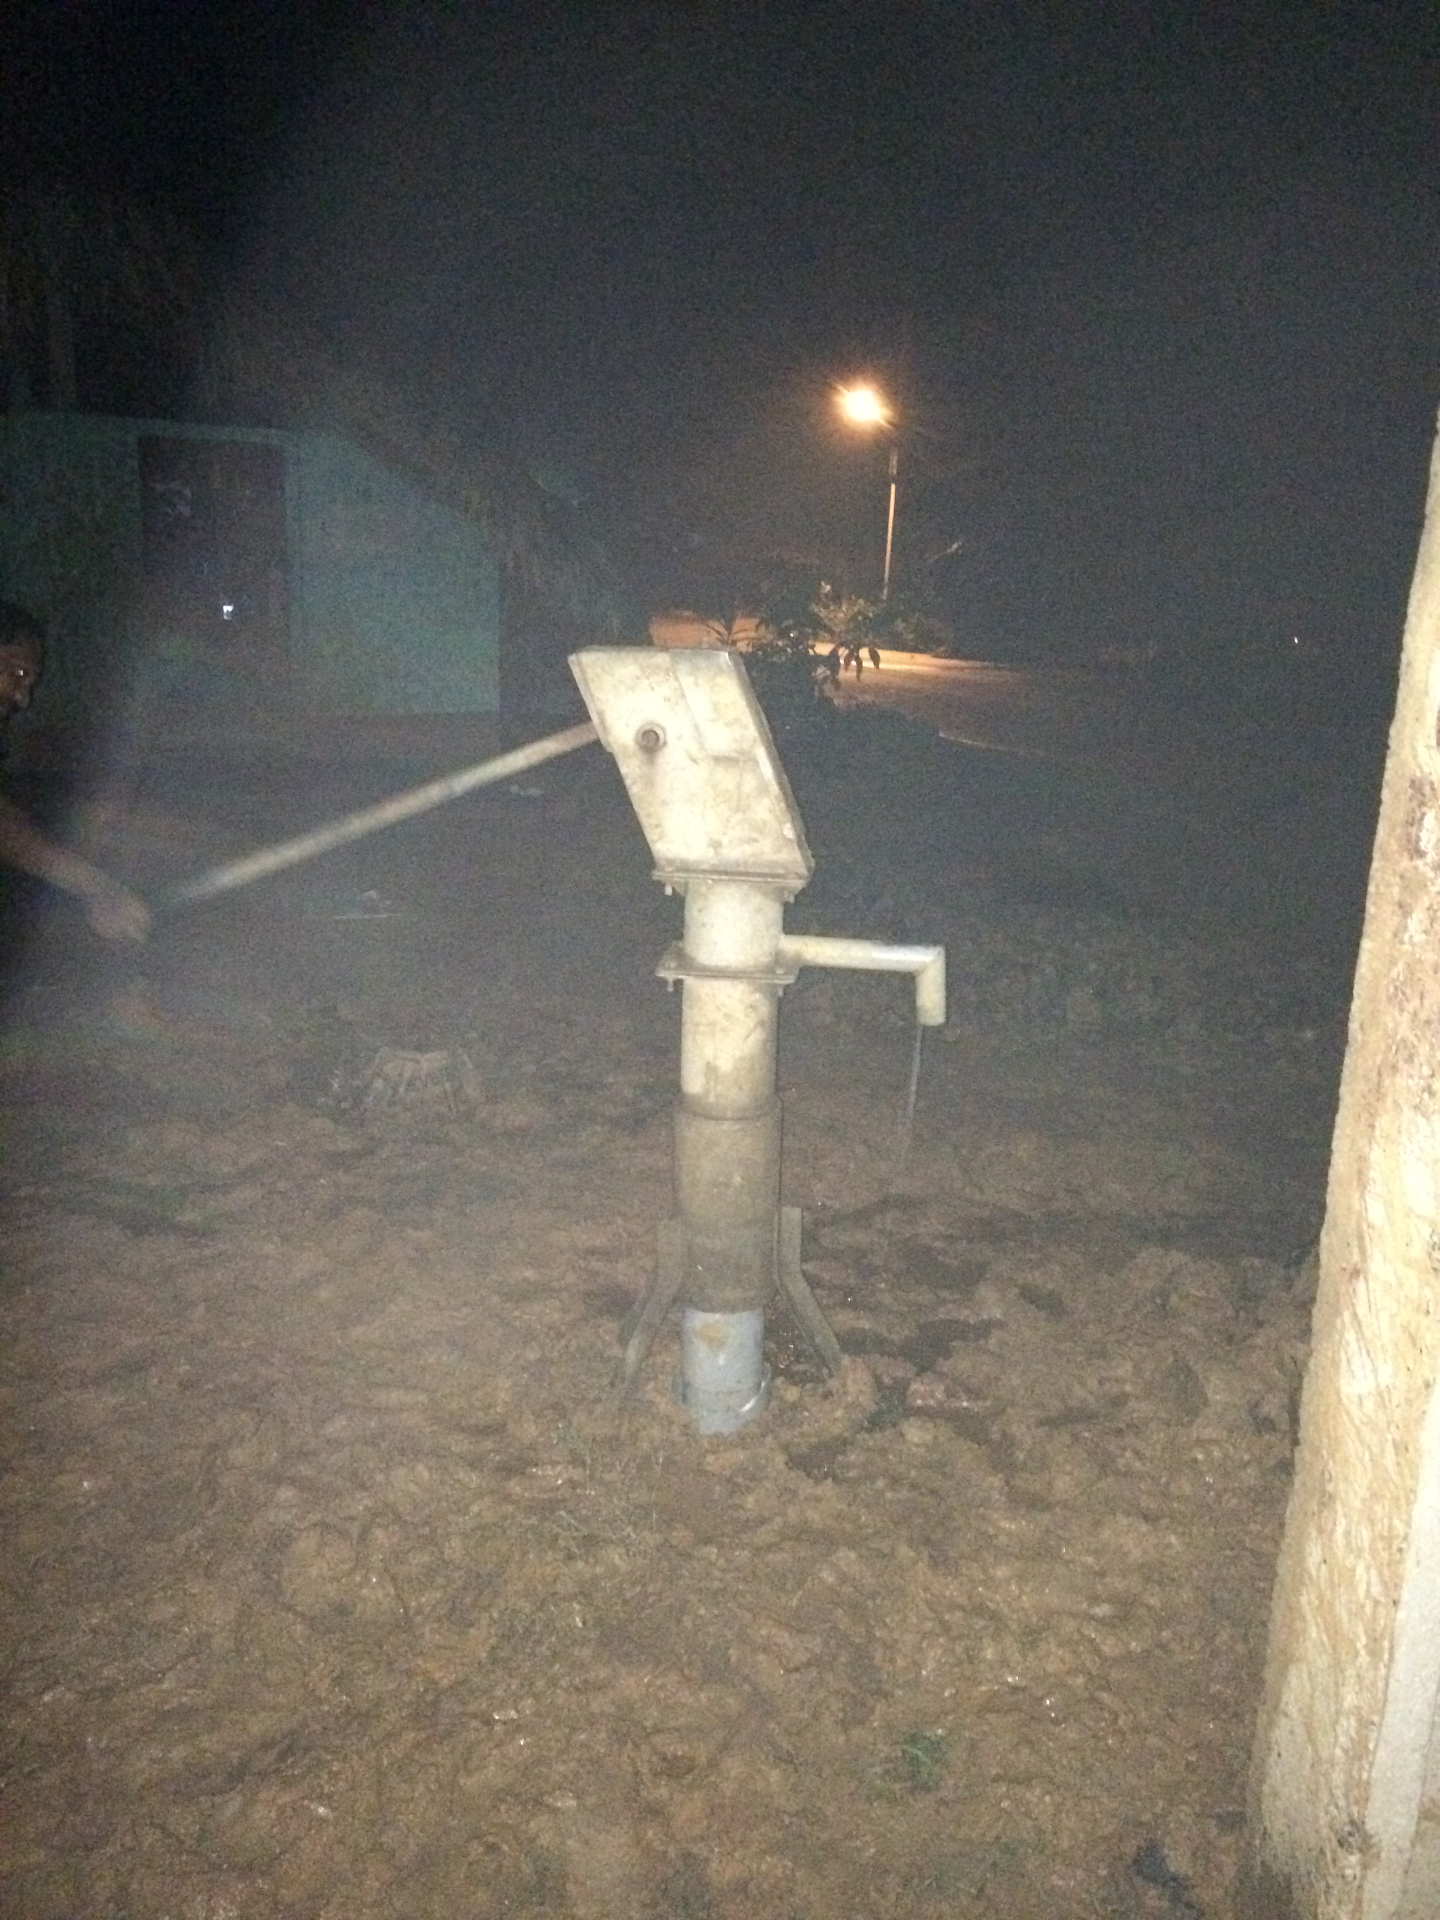 A New Functional Pump